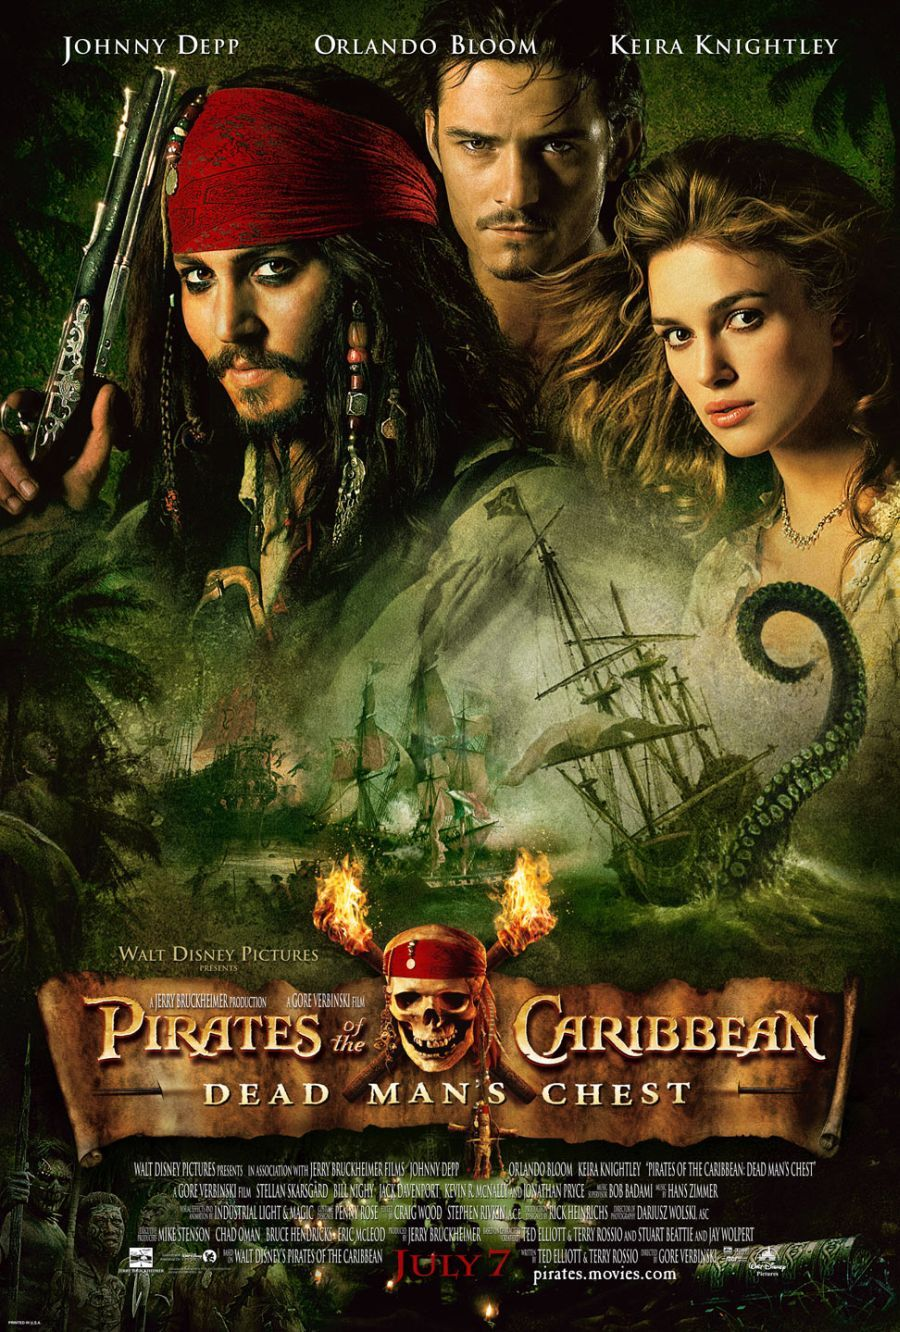 http://images3.wikia.nocookie.net/__cb20070710191319/piratesonline/images/2/2d/Pirates_of_the_caribbean_2_poster_b.jpg